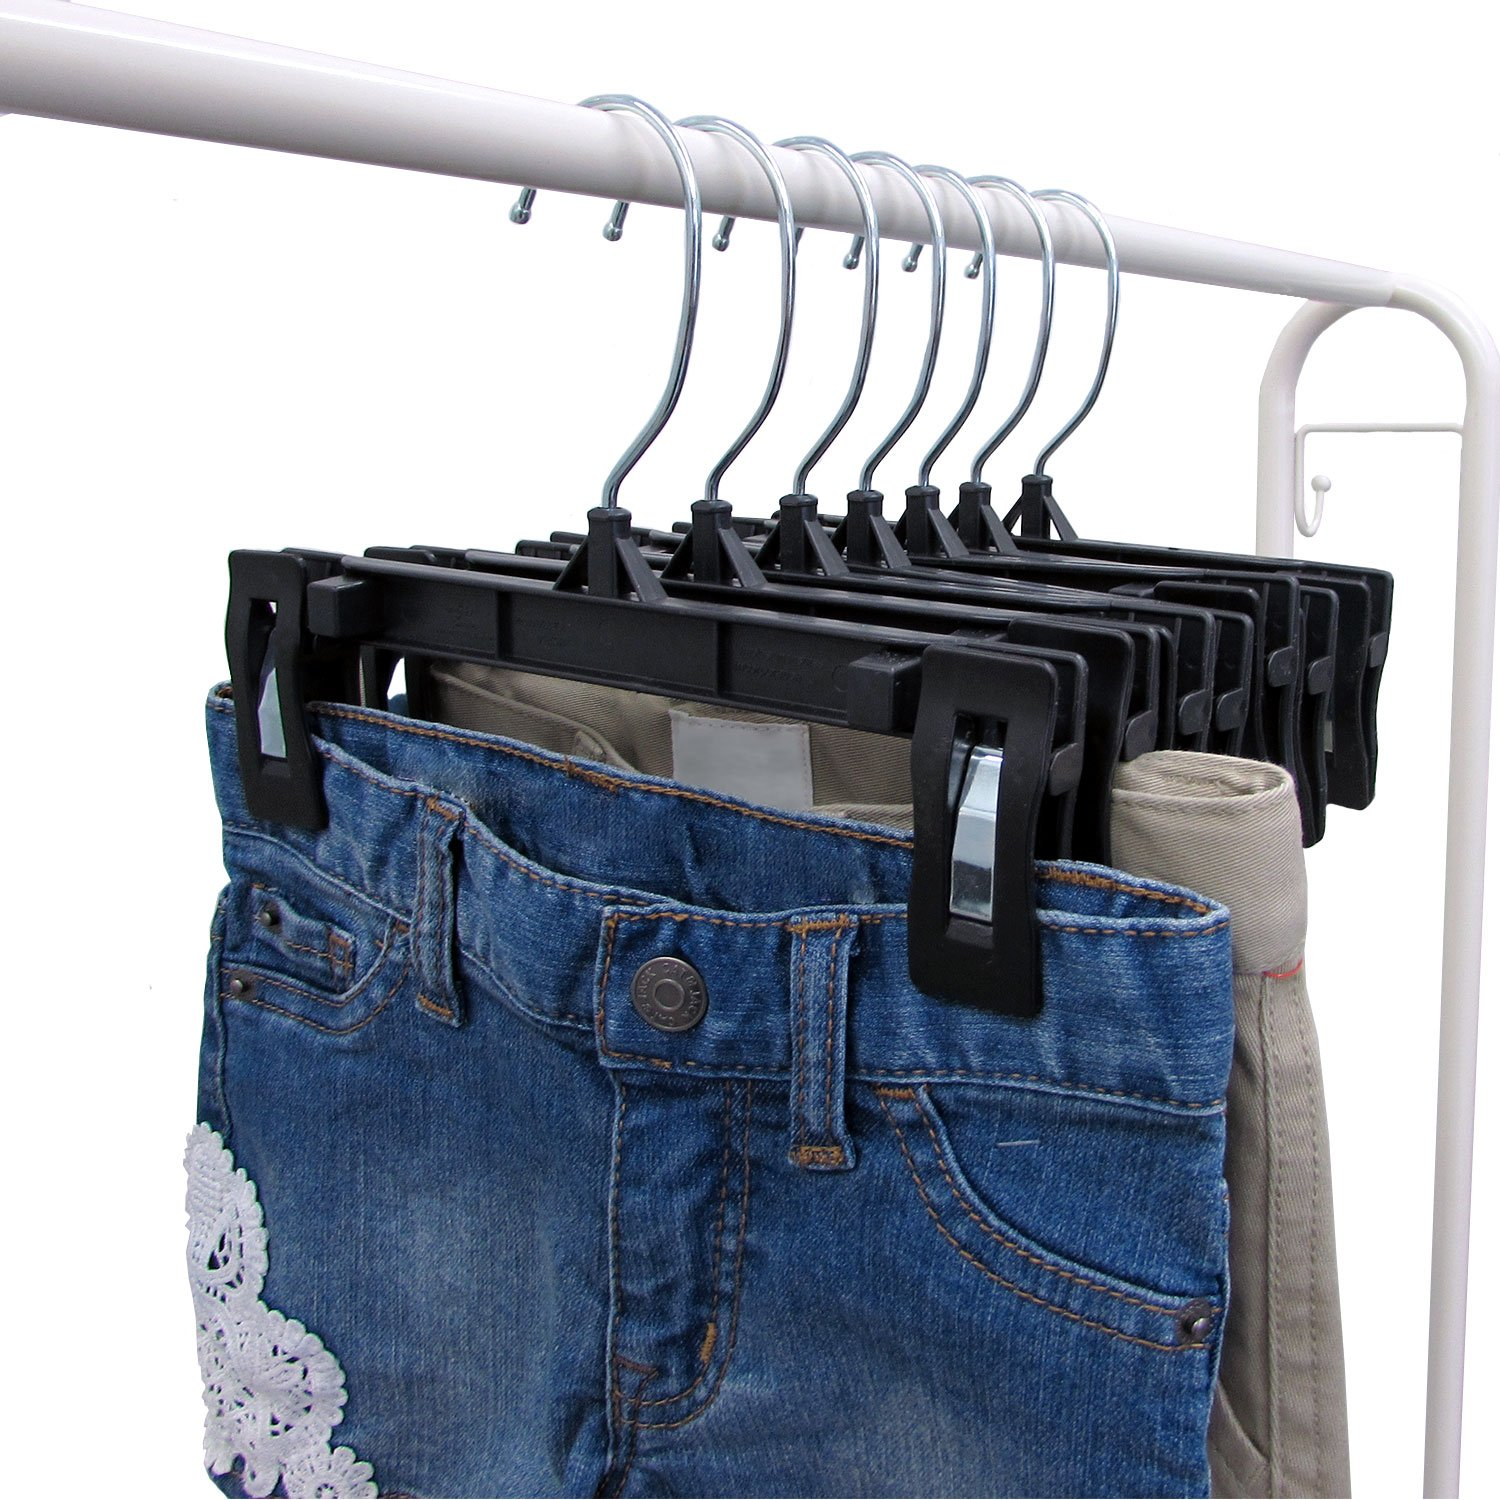 25 Pack Black 8 Inch Hanger Central Recycled Heavy Duty Plastic Bottoms Hangers with Ridged Pinch Clips Pants Hangers